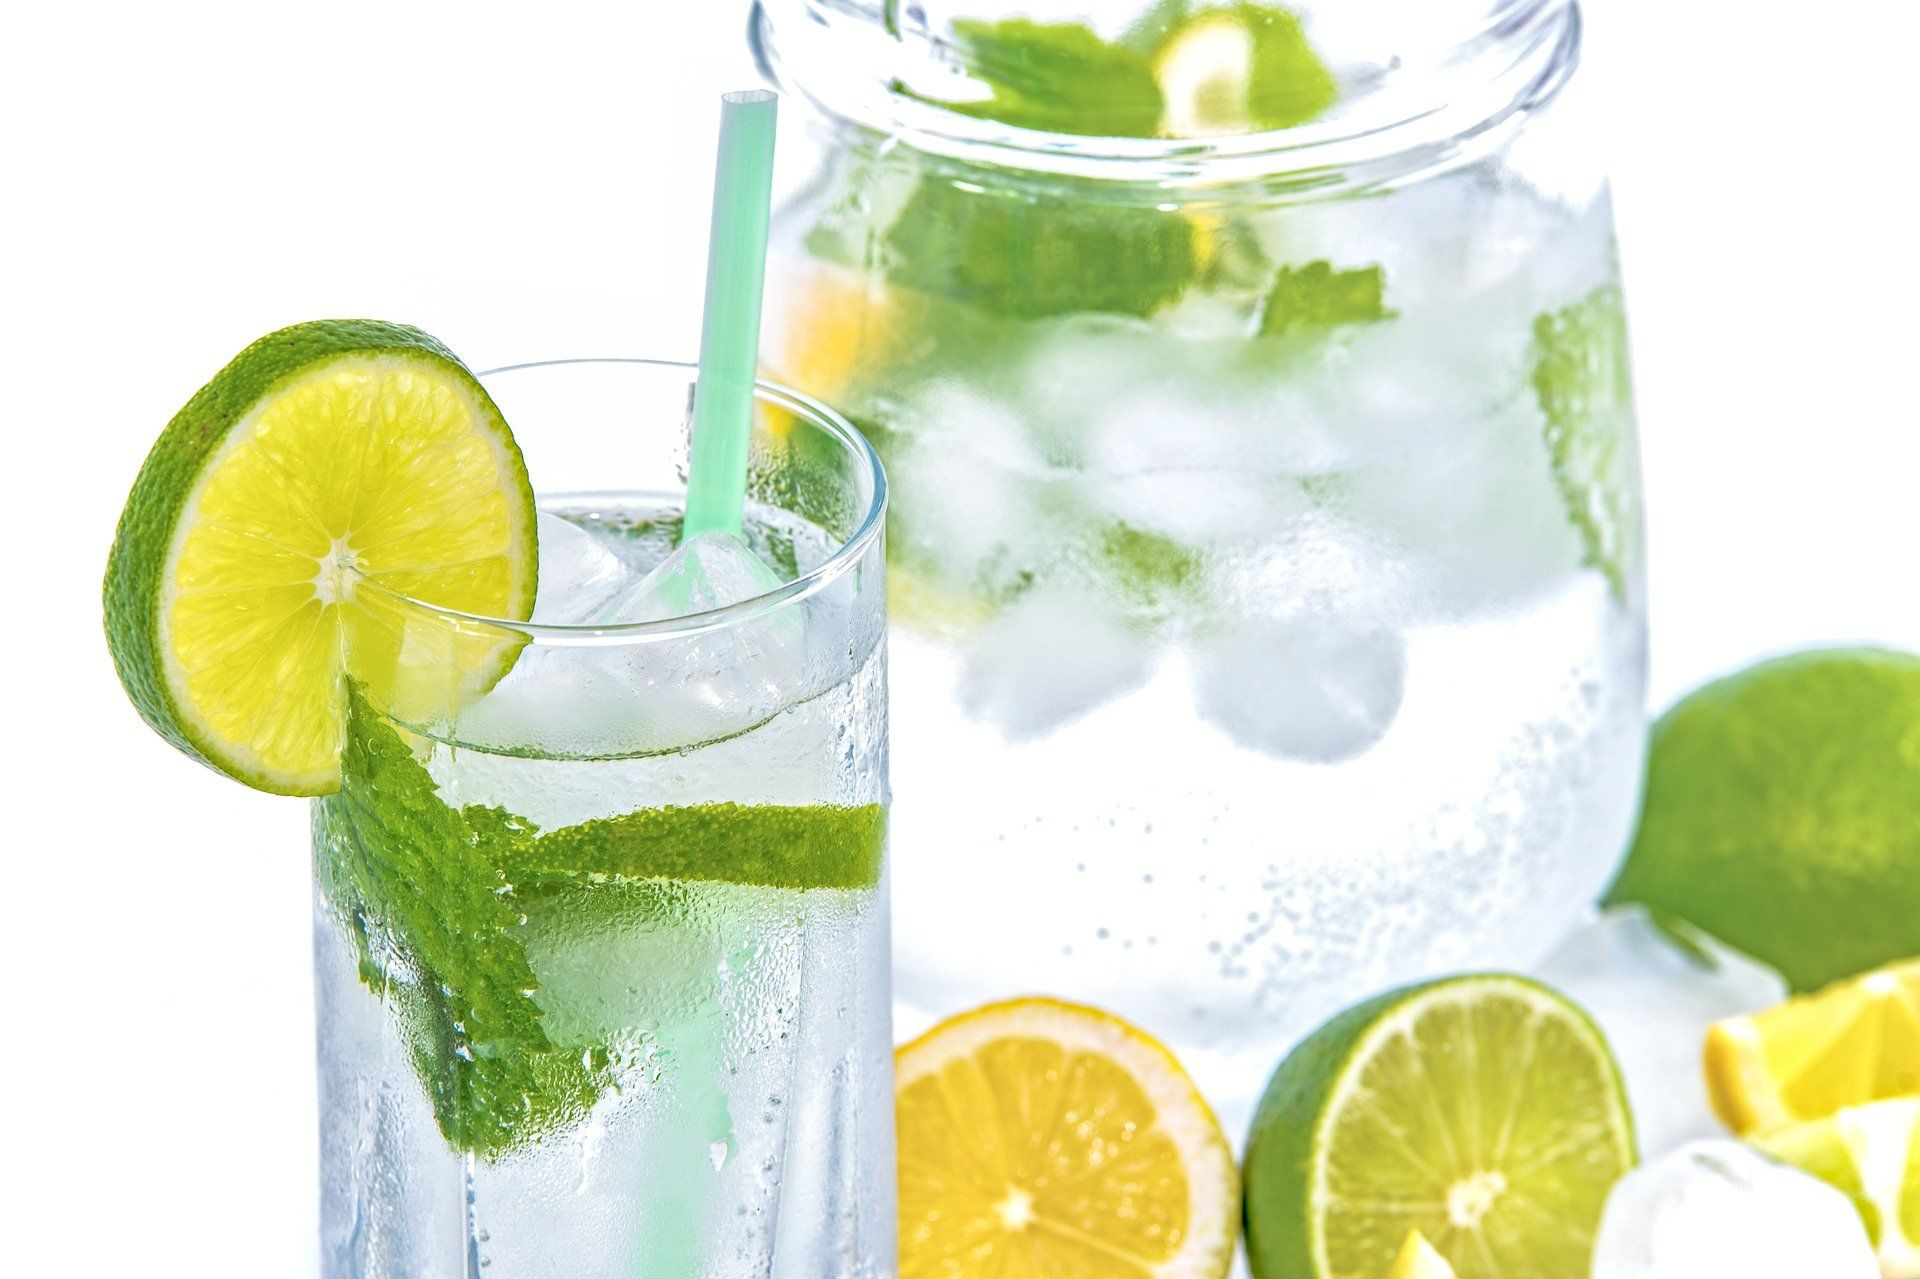 detox water for weight loss, drinking water to lose weight | Shawn Phillips Personal Trainer Los Angeles